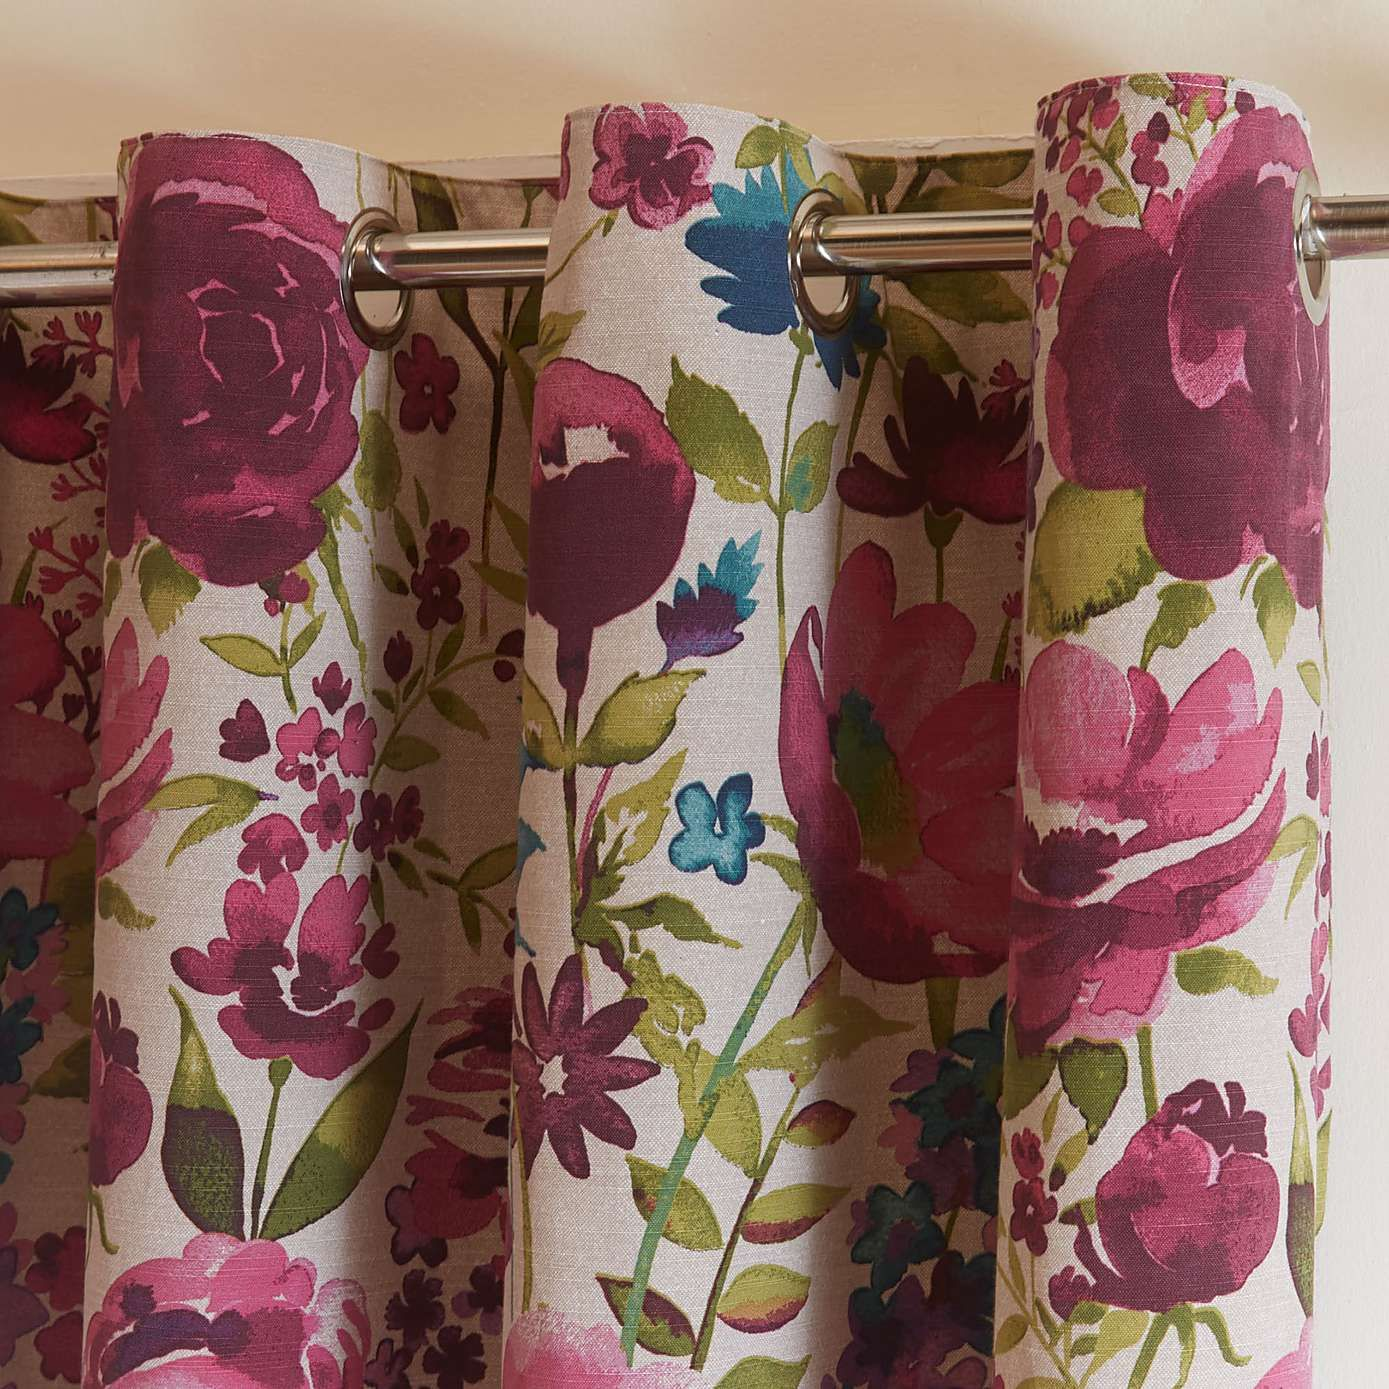 Misty Moors Plum Thermal Eyelet Curtains Dunelm Curtains Plum Curtains Ready Made Eyelet Curtains